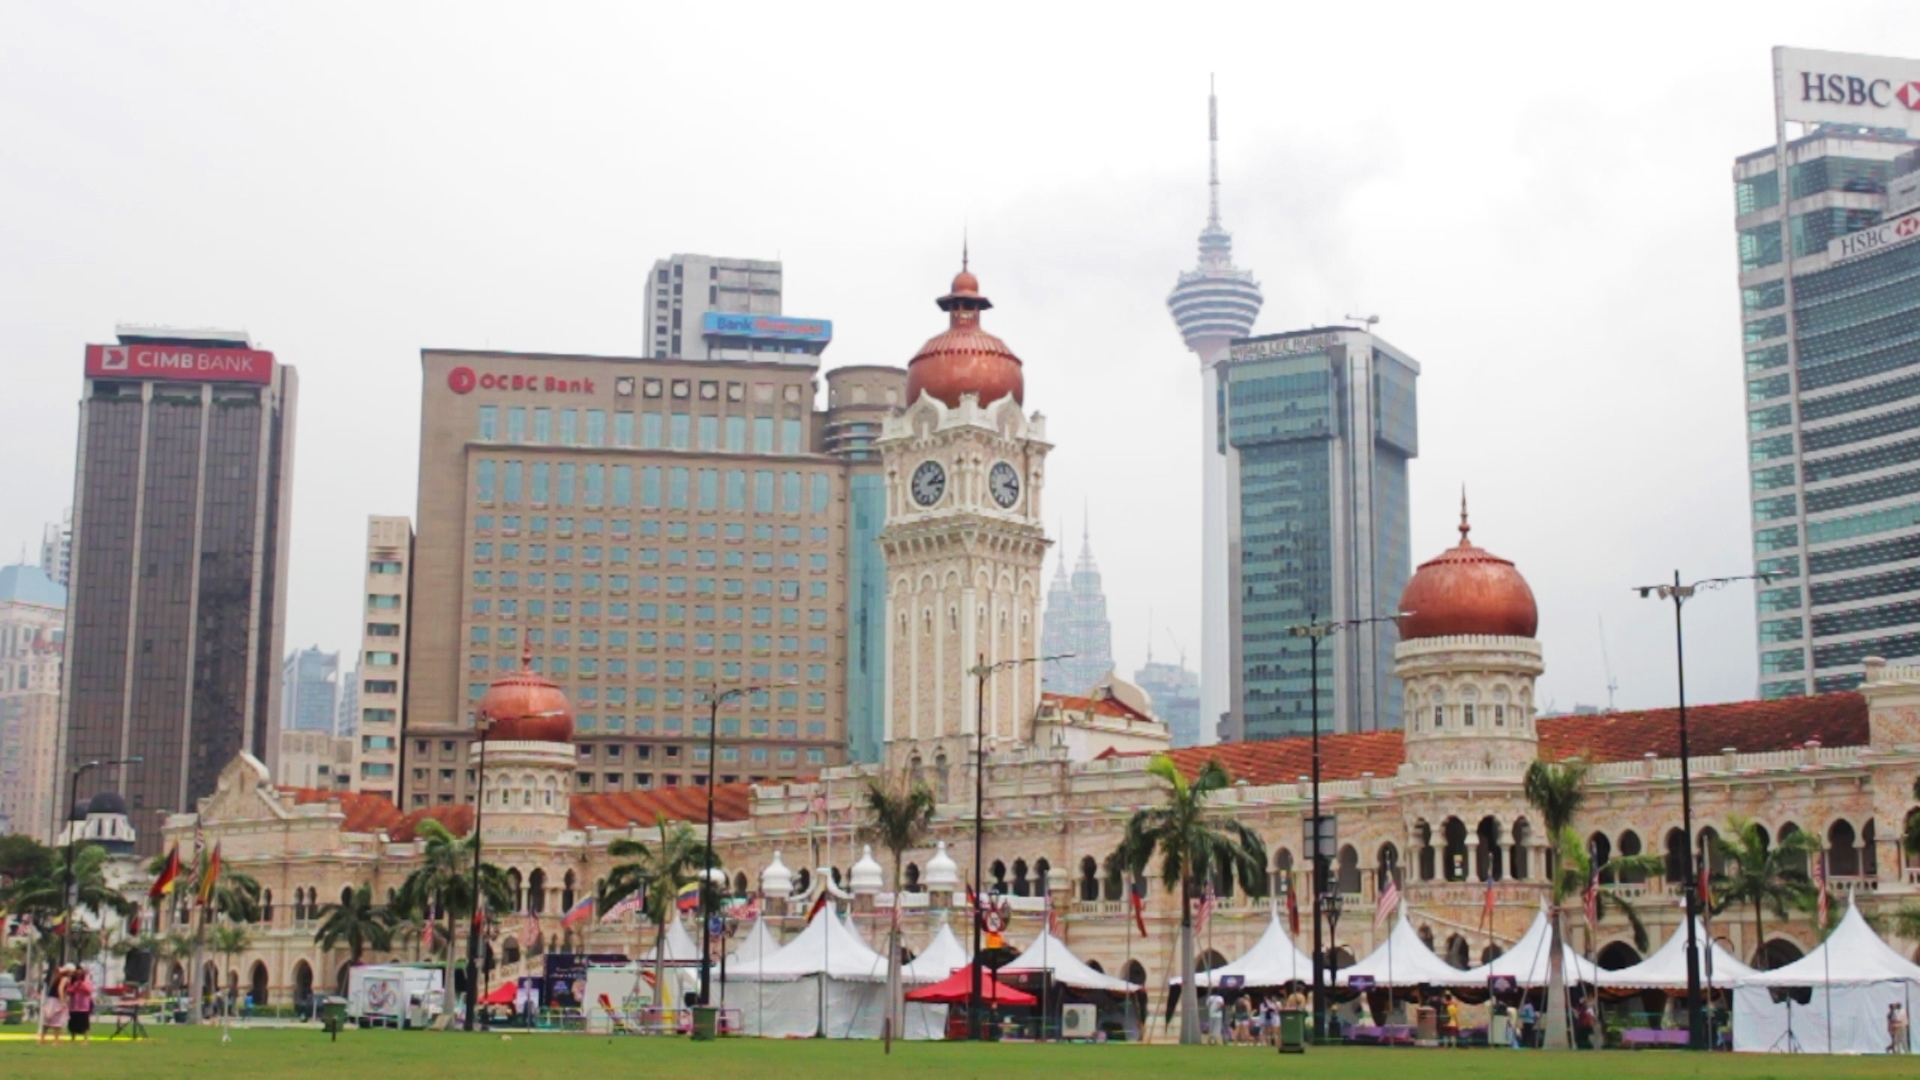 A History Of The Sultan Abdul Samad Building In 60 Seconds